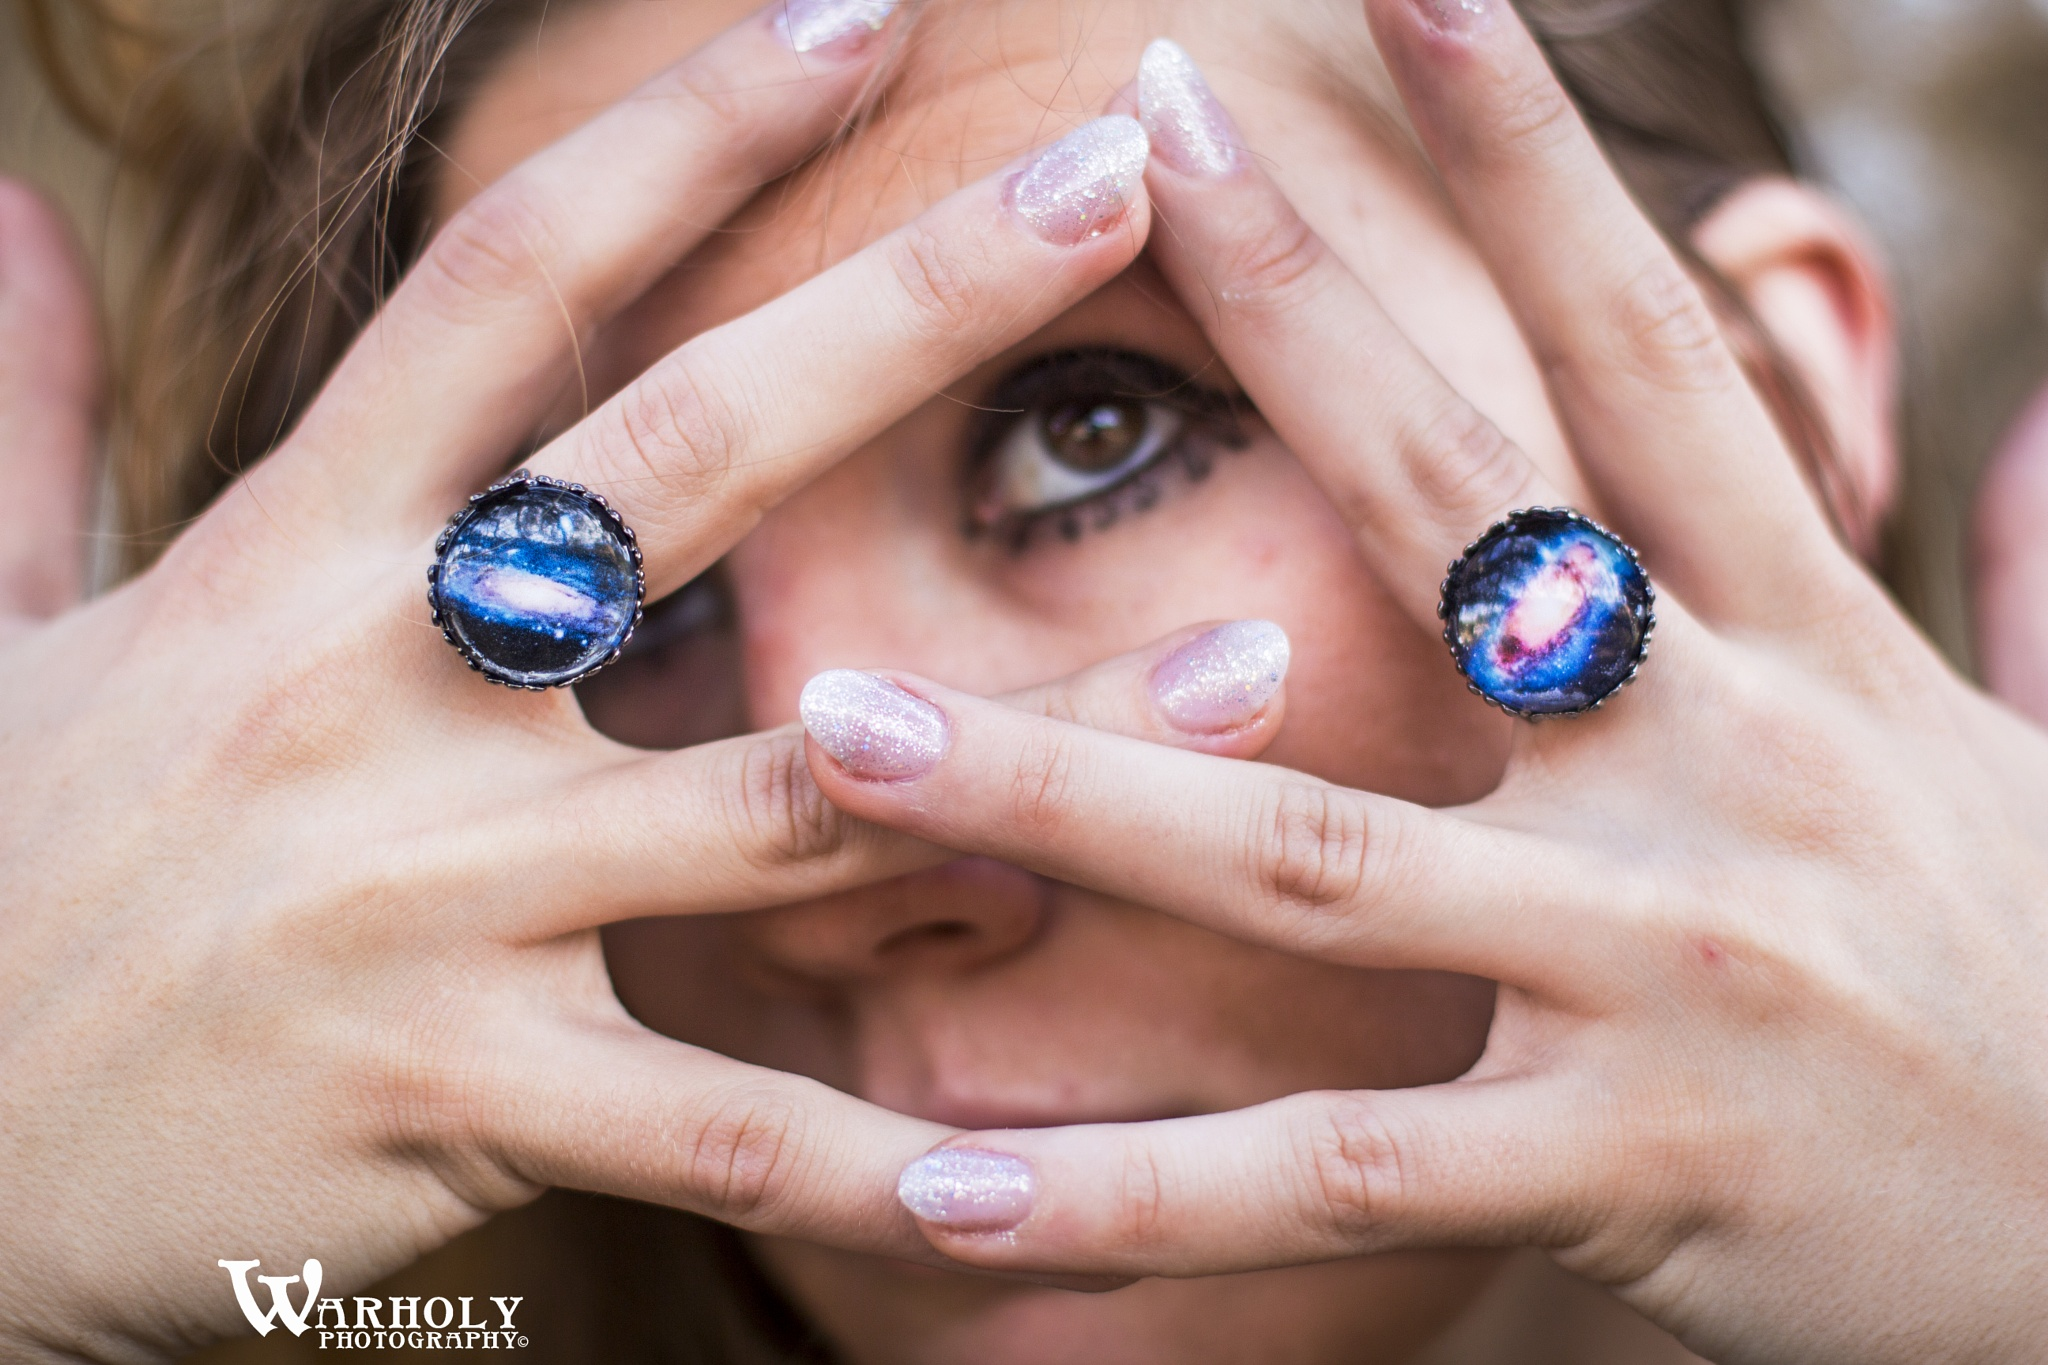 The Galaxy Rings by Warholy Photography